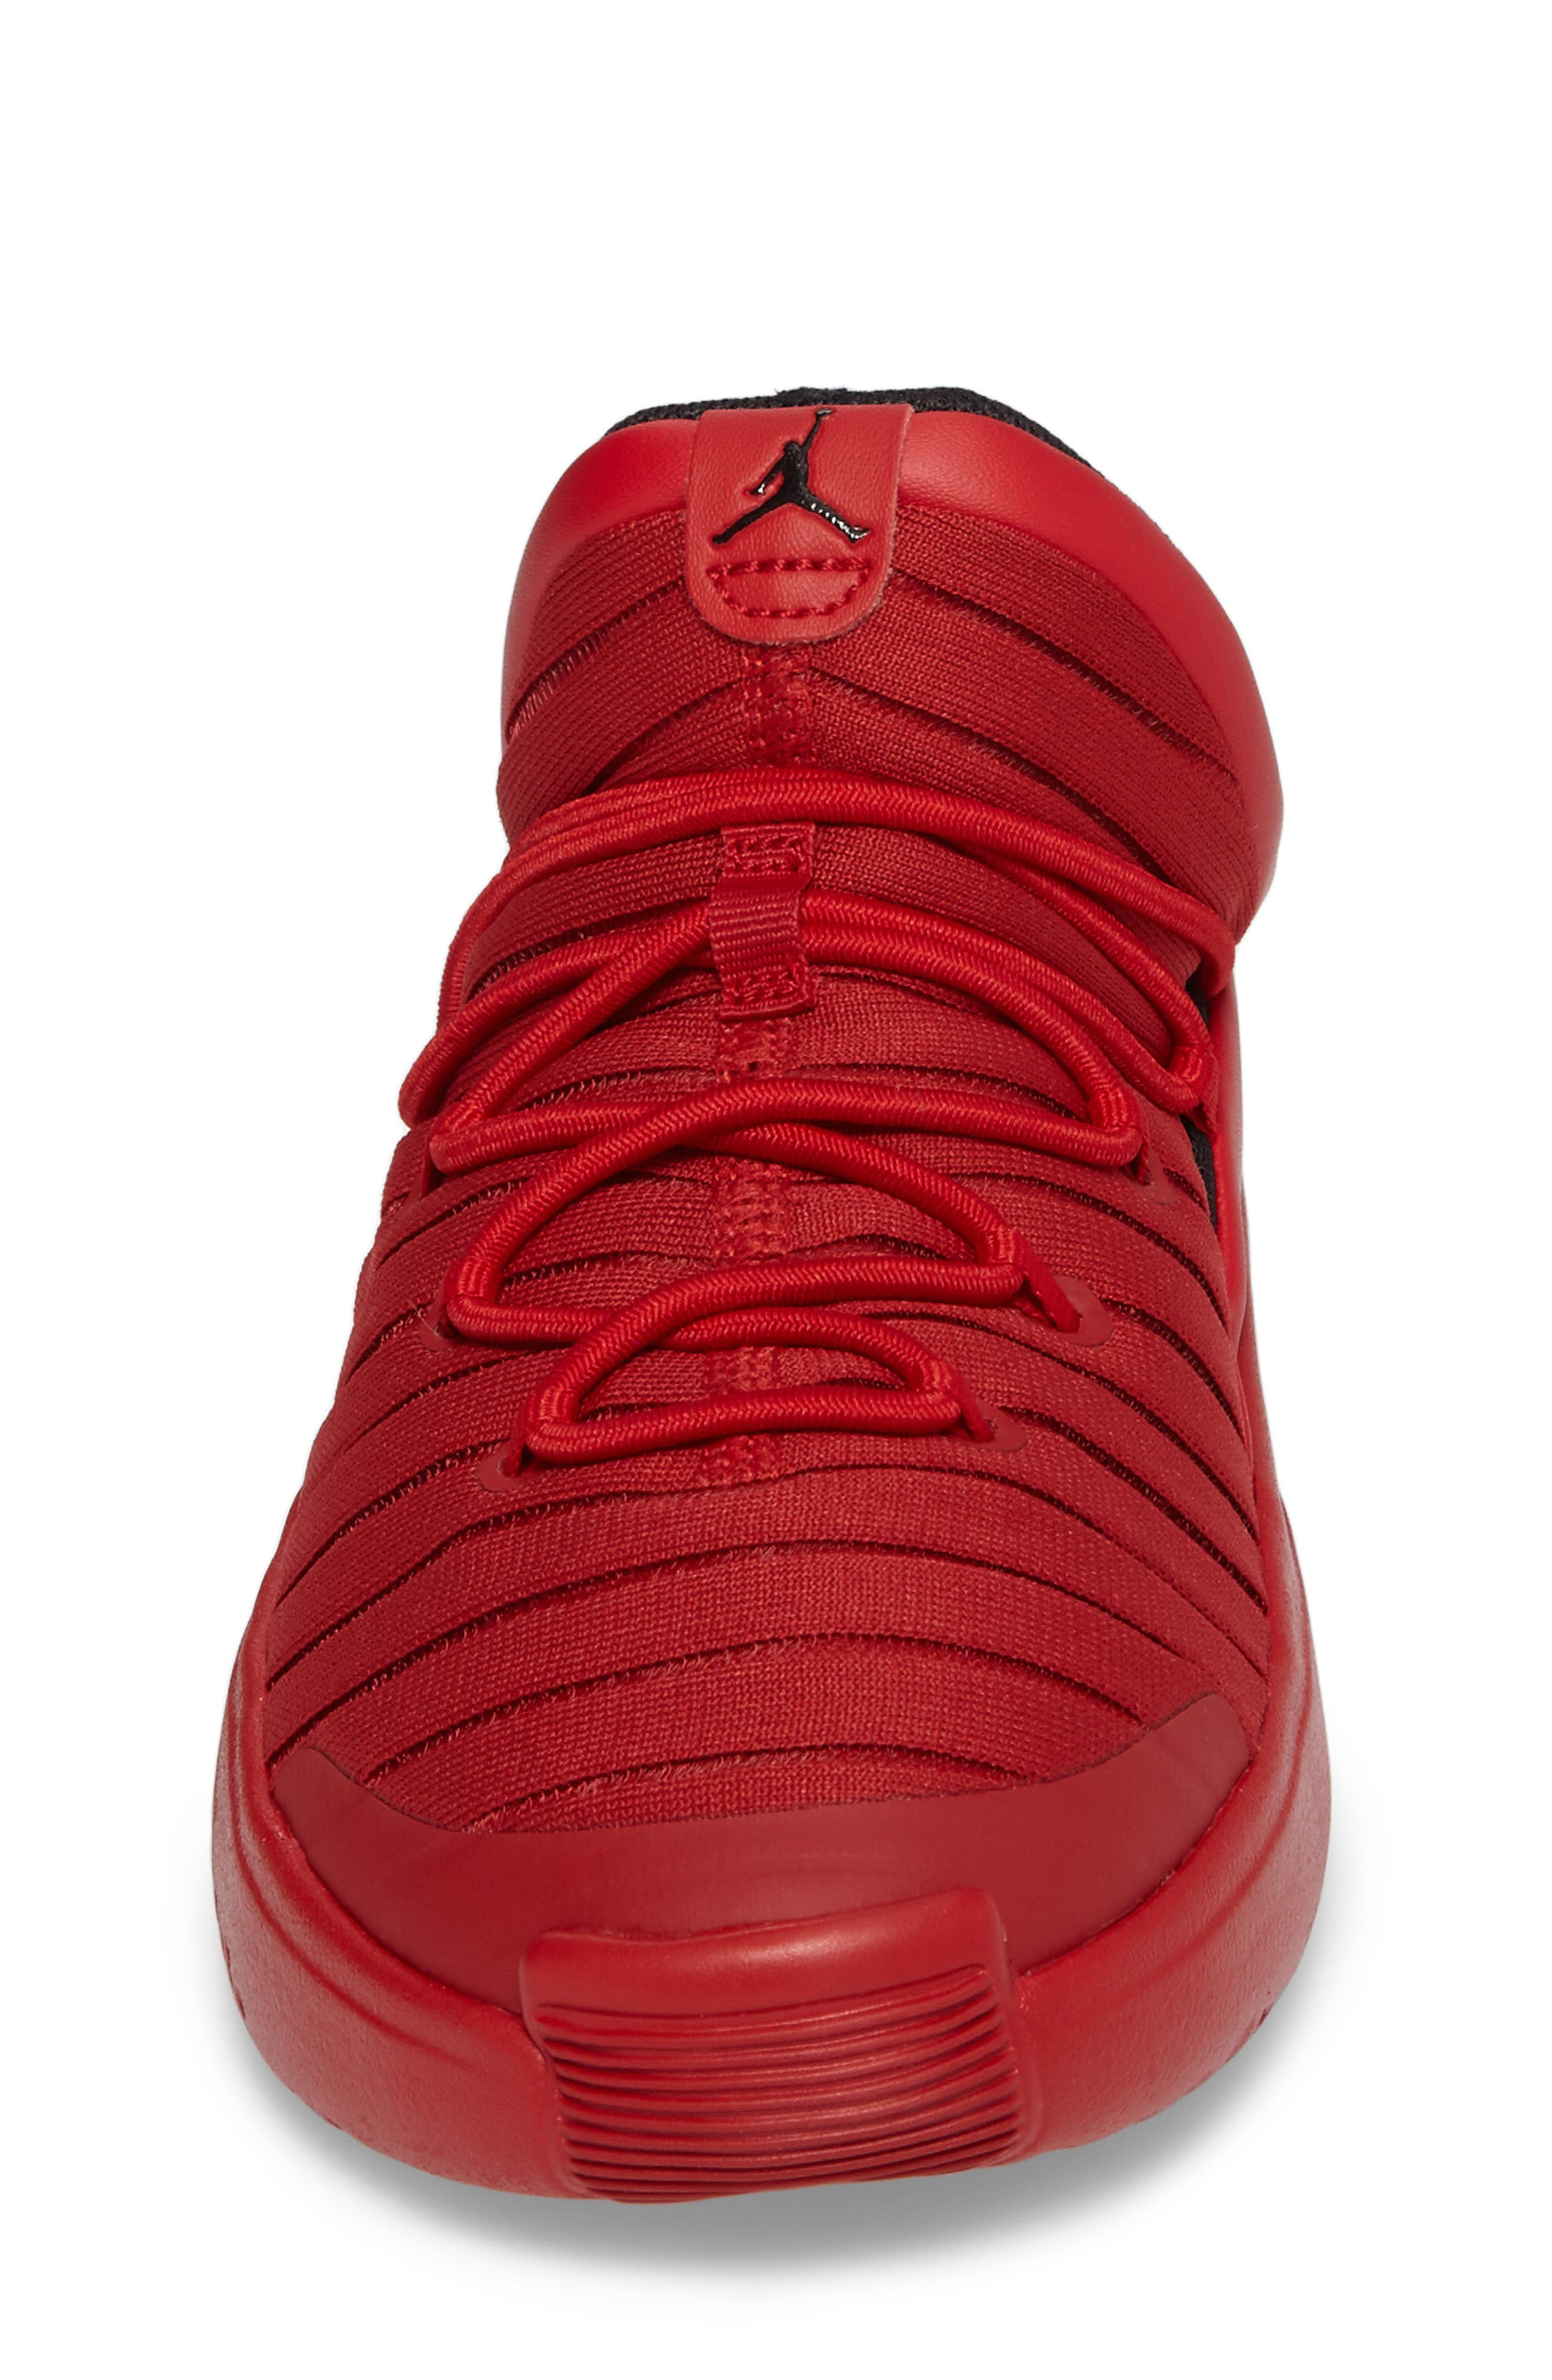 Flight Luxe Sneaker,                             Alternate thumbnail 4, color,                             Gym Red/ Black